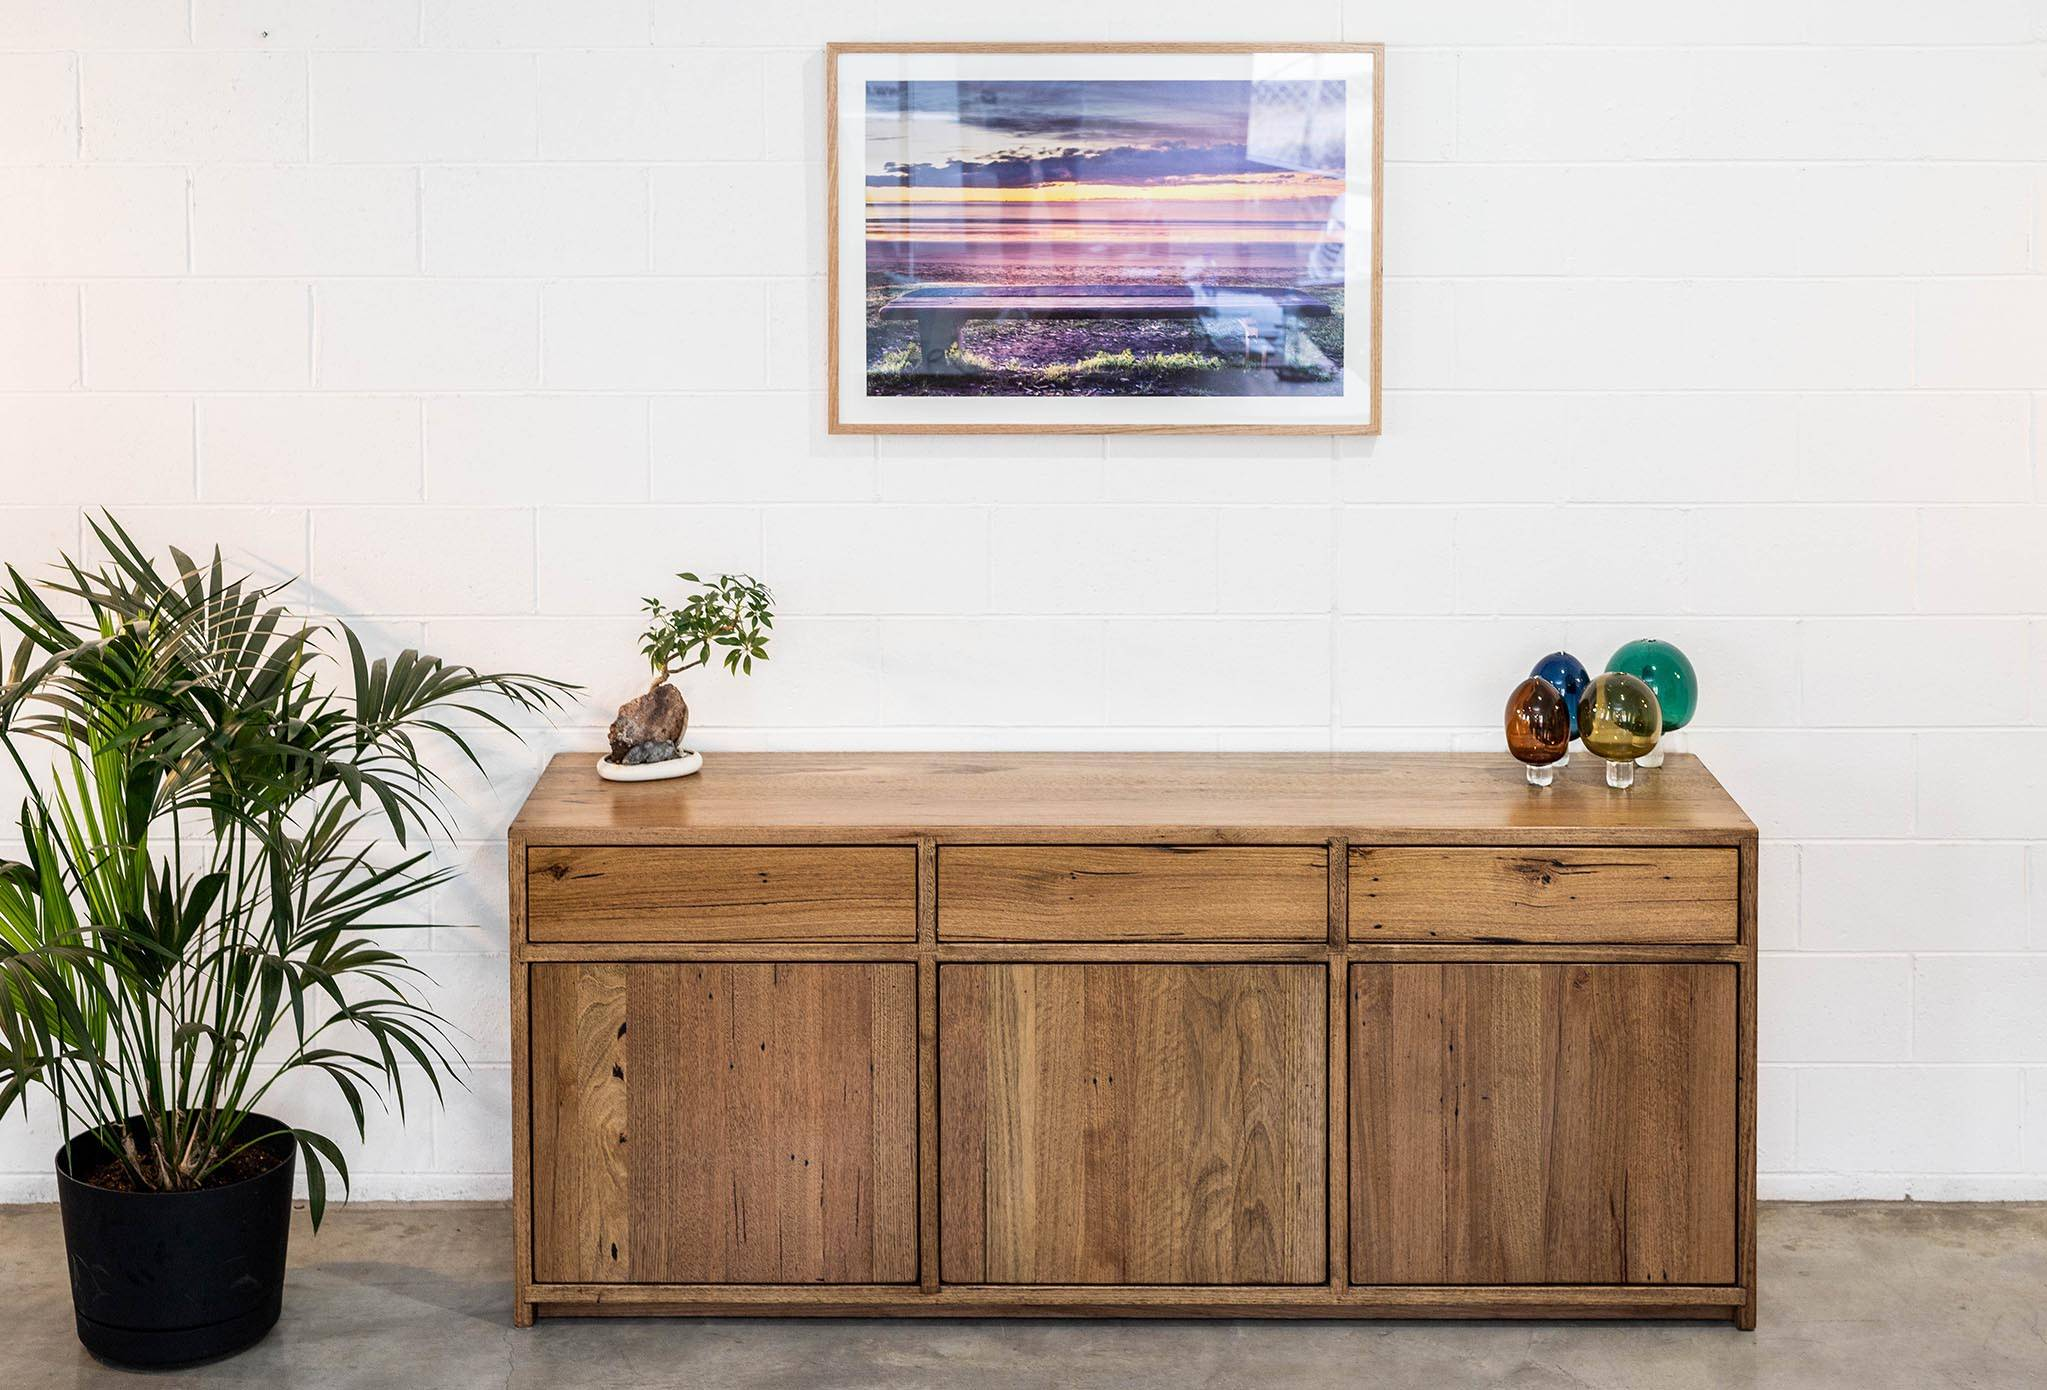 Sideboard Buffet Sringy Bark Push Open Doors  + Drawers, Adjustable Shelves